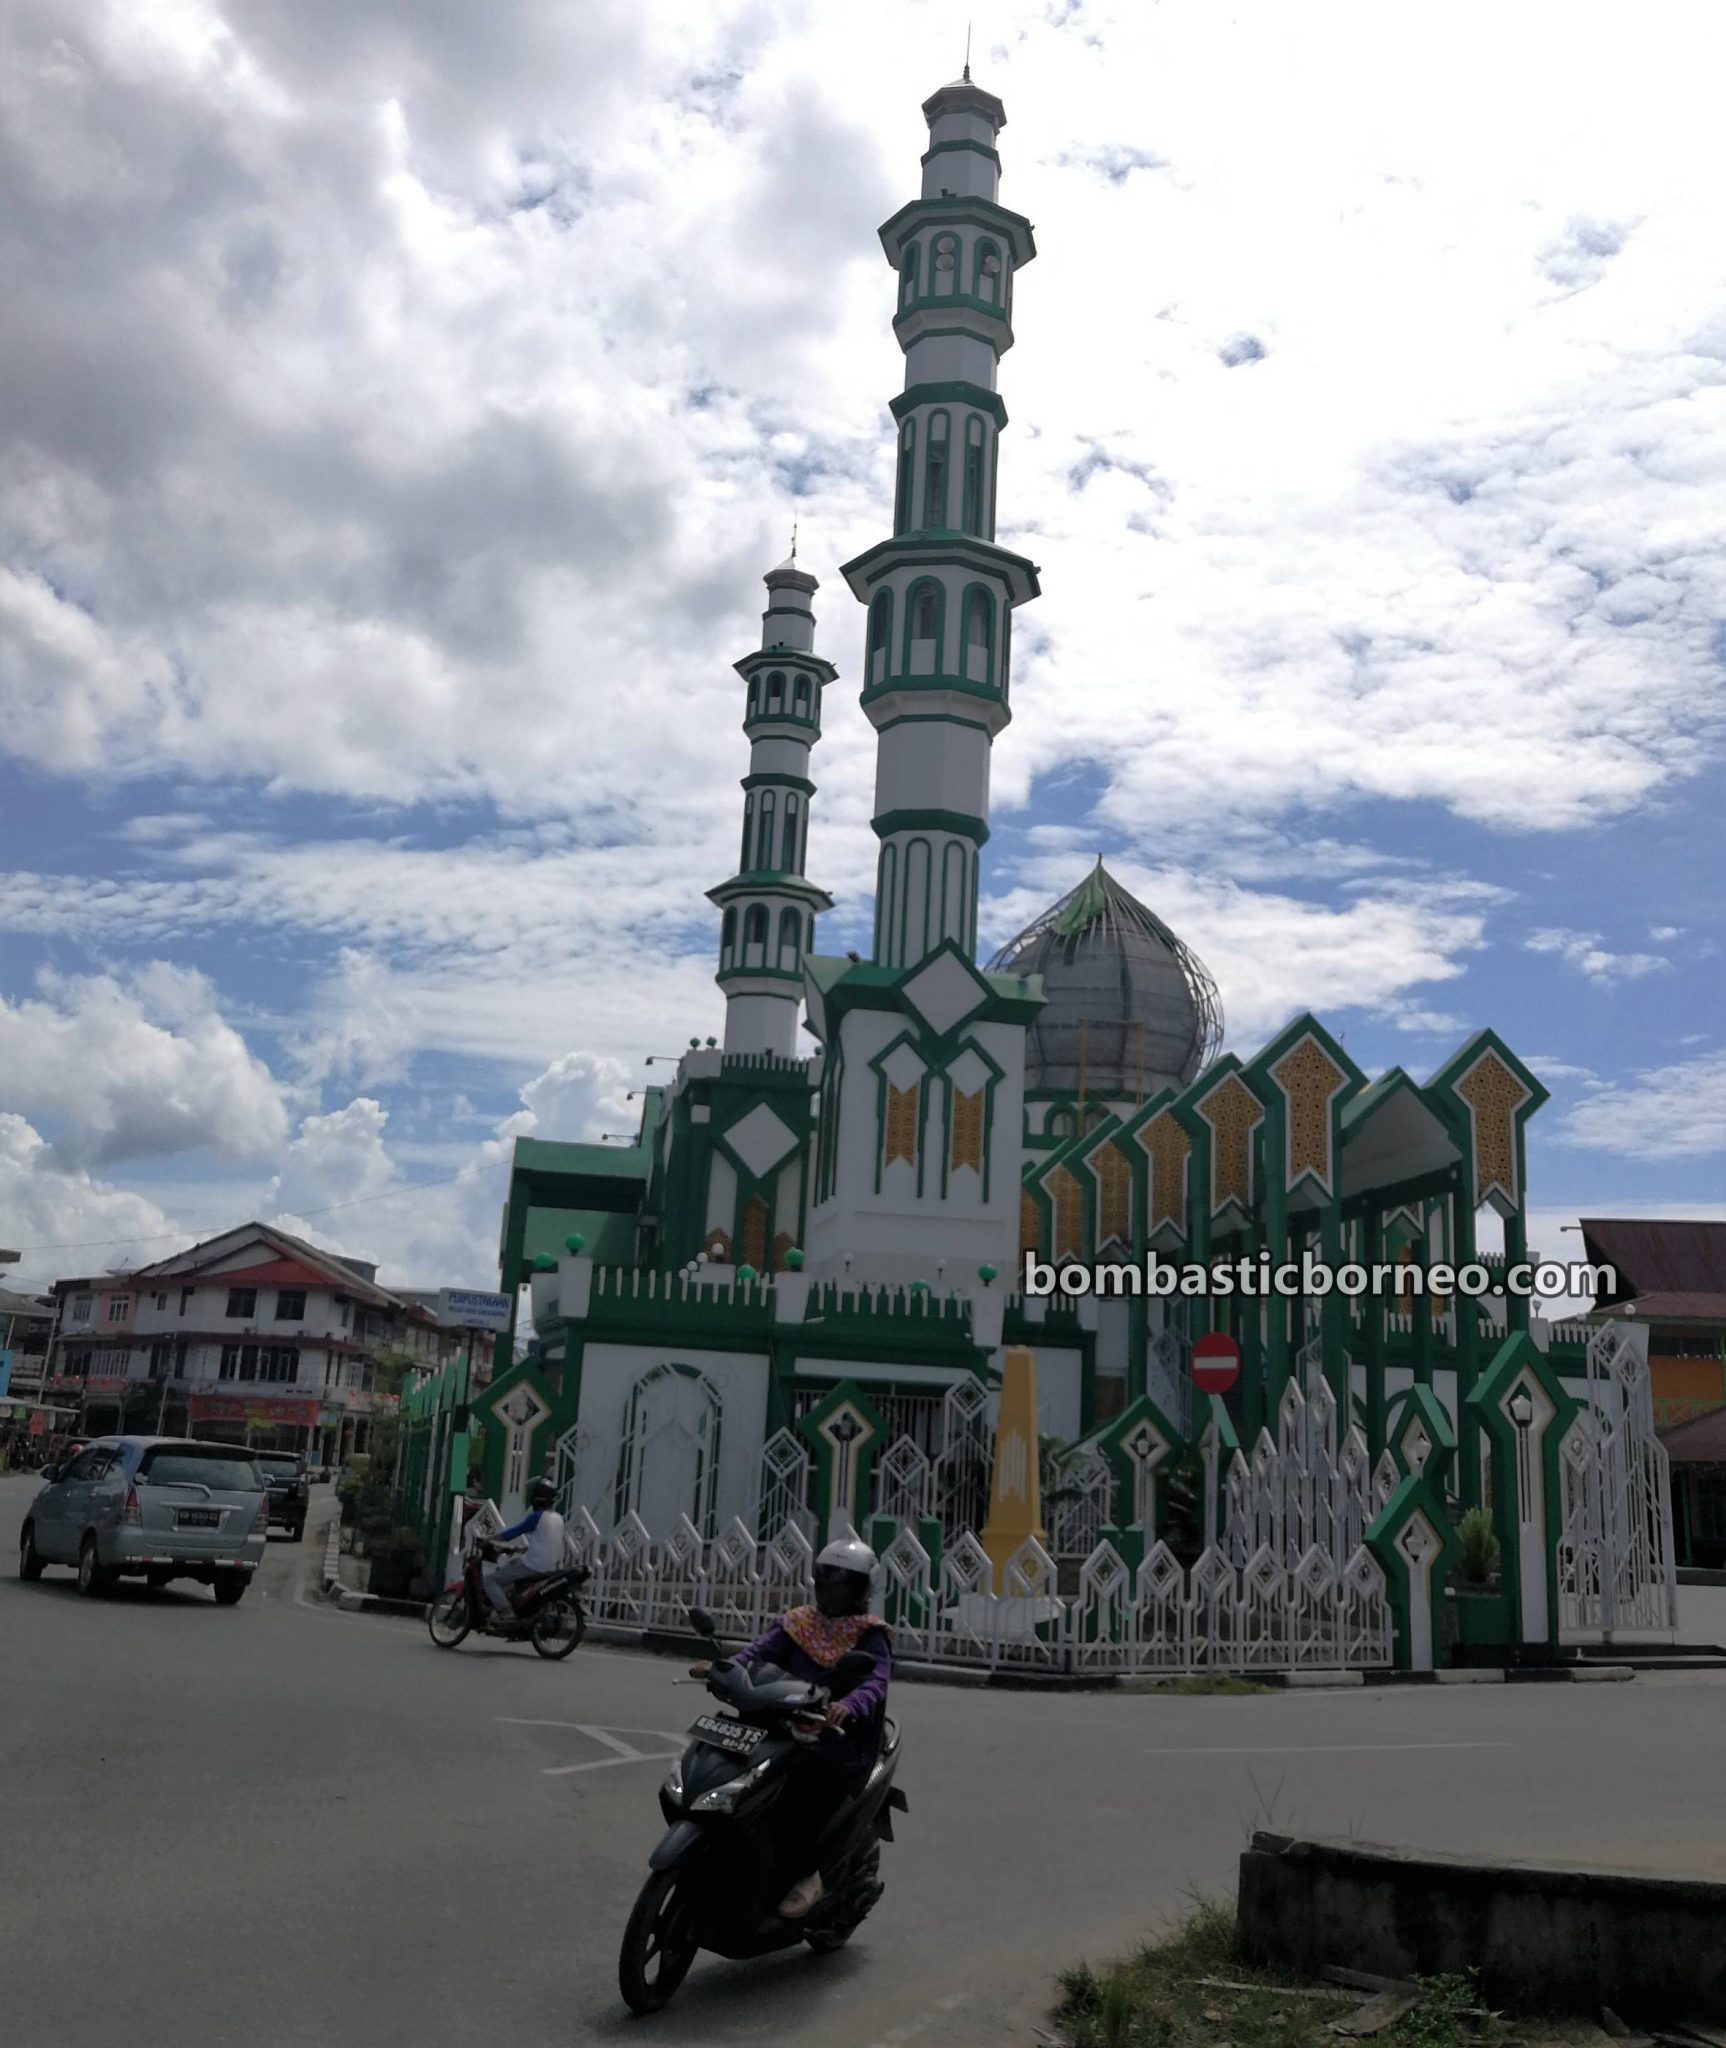 budaya, culture, backpackers, destination, Ethnic, Obyek wisata, Tourism, tourist attraction, travel guide, Cross Border, Borneo, 探索婆罗洲游踪, 印尼西加里曼丹, 山口洋清真寺